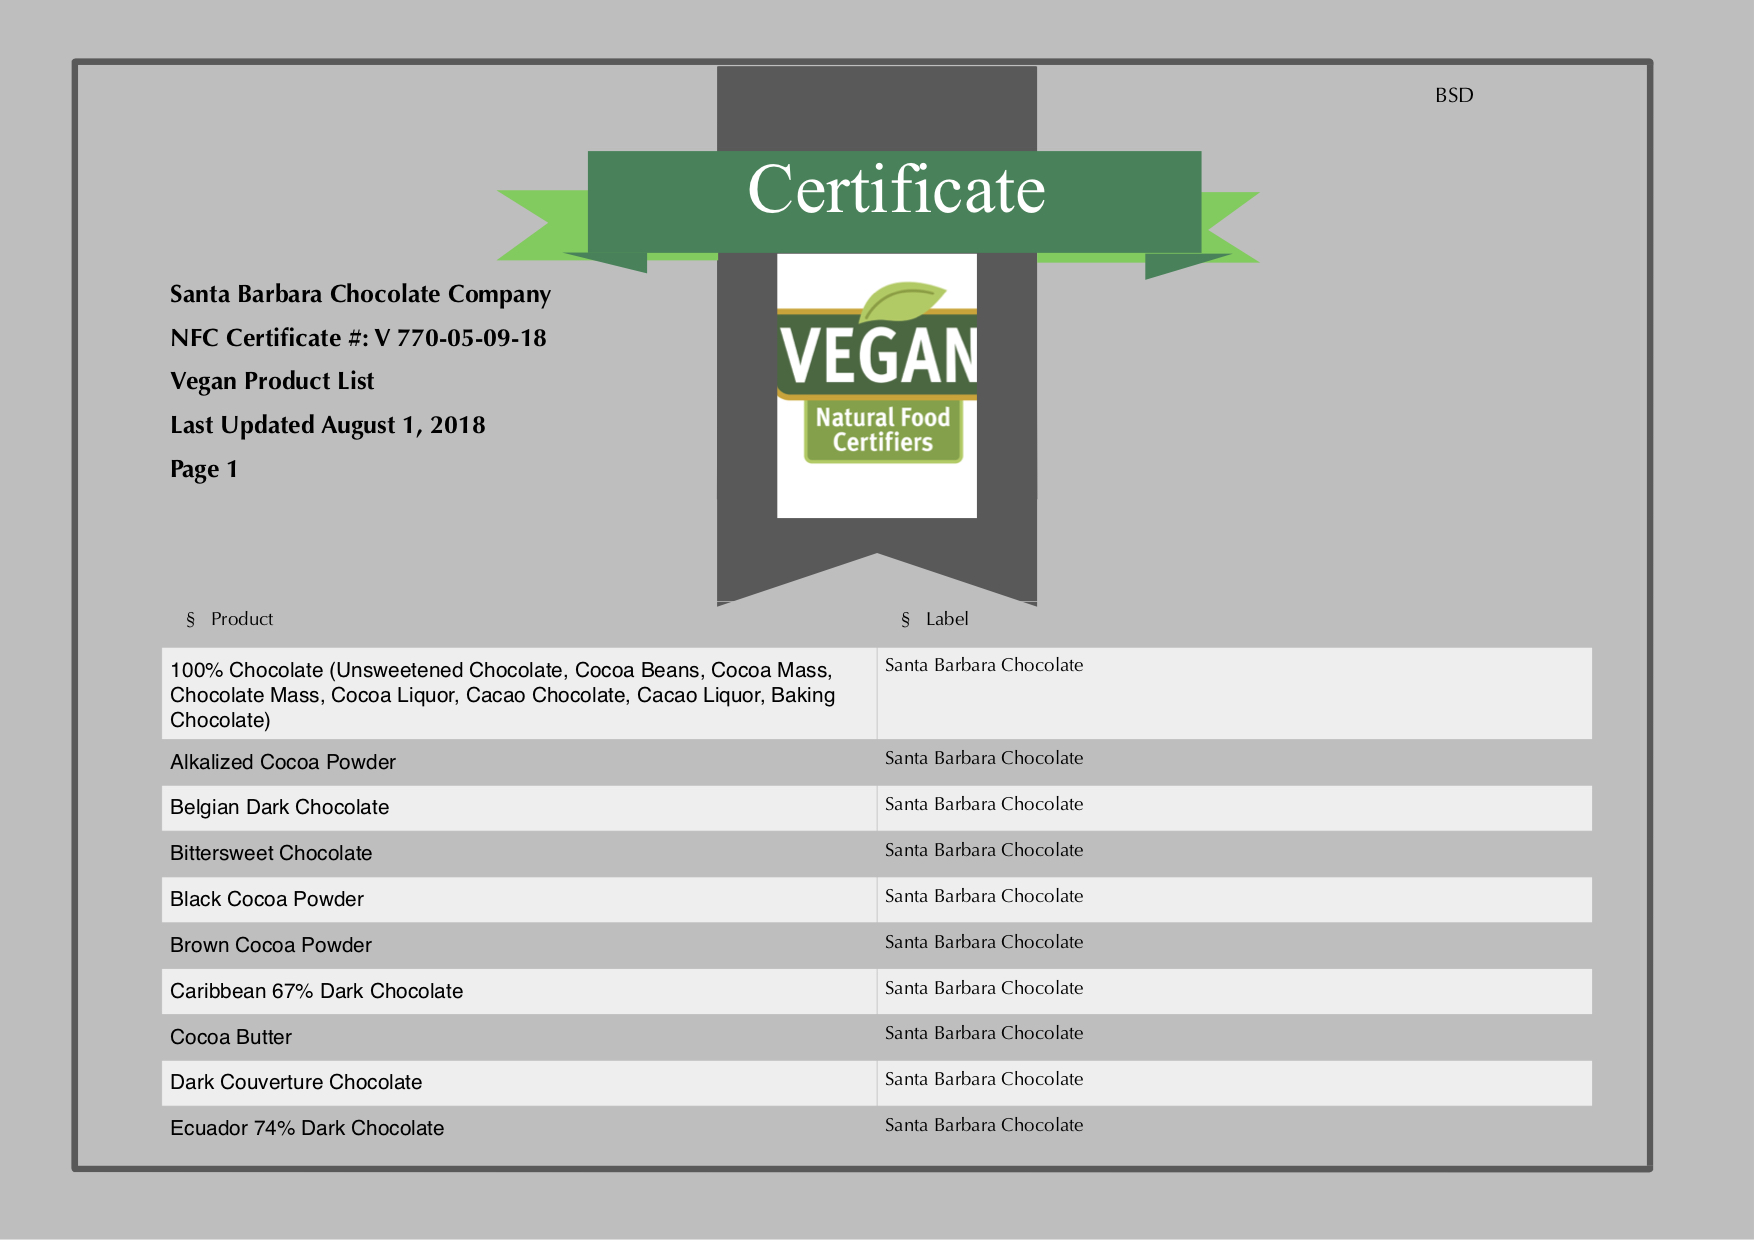 santa-barbara-chocolate-vegan-cert-2018-page-2-.jpg